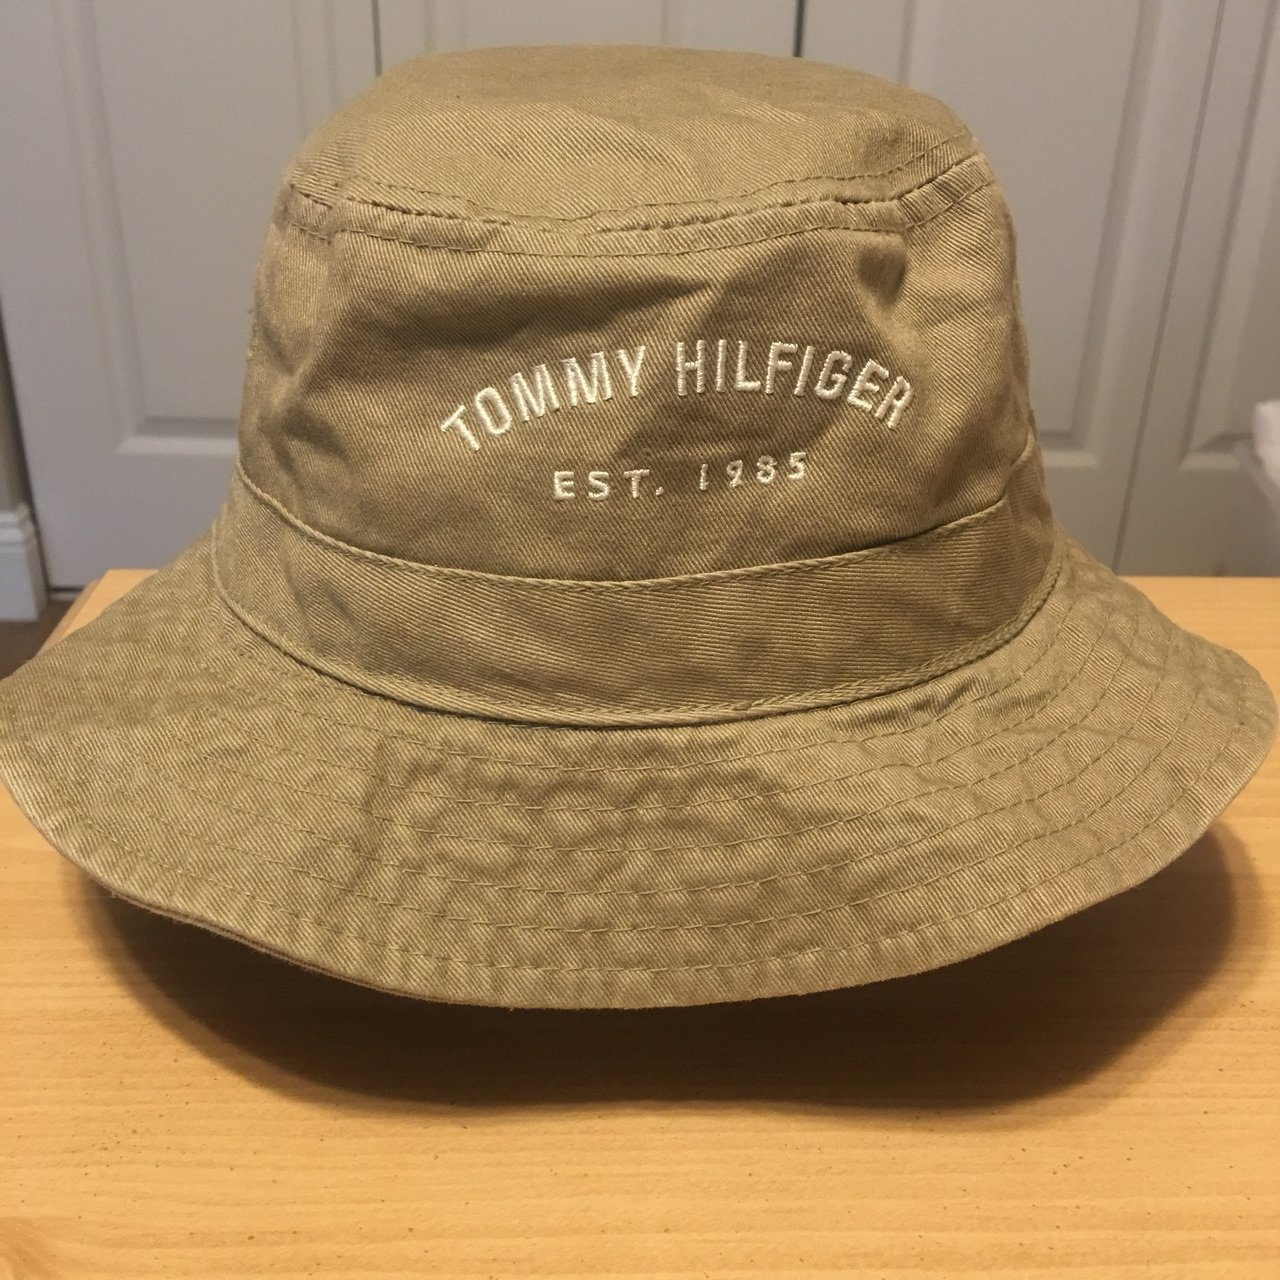 Vintage ford bucket hat 9 10 condition - Depop 2b75ad112f7